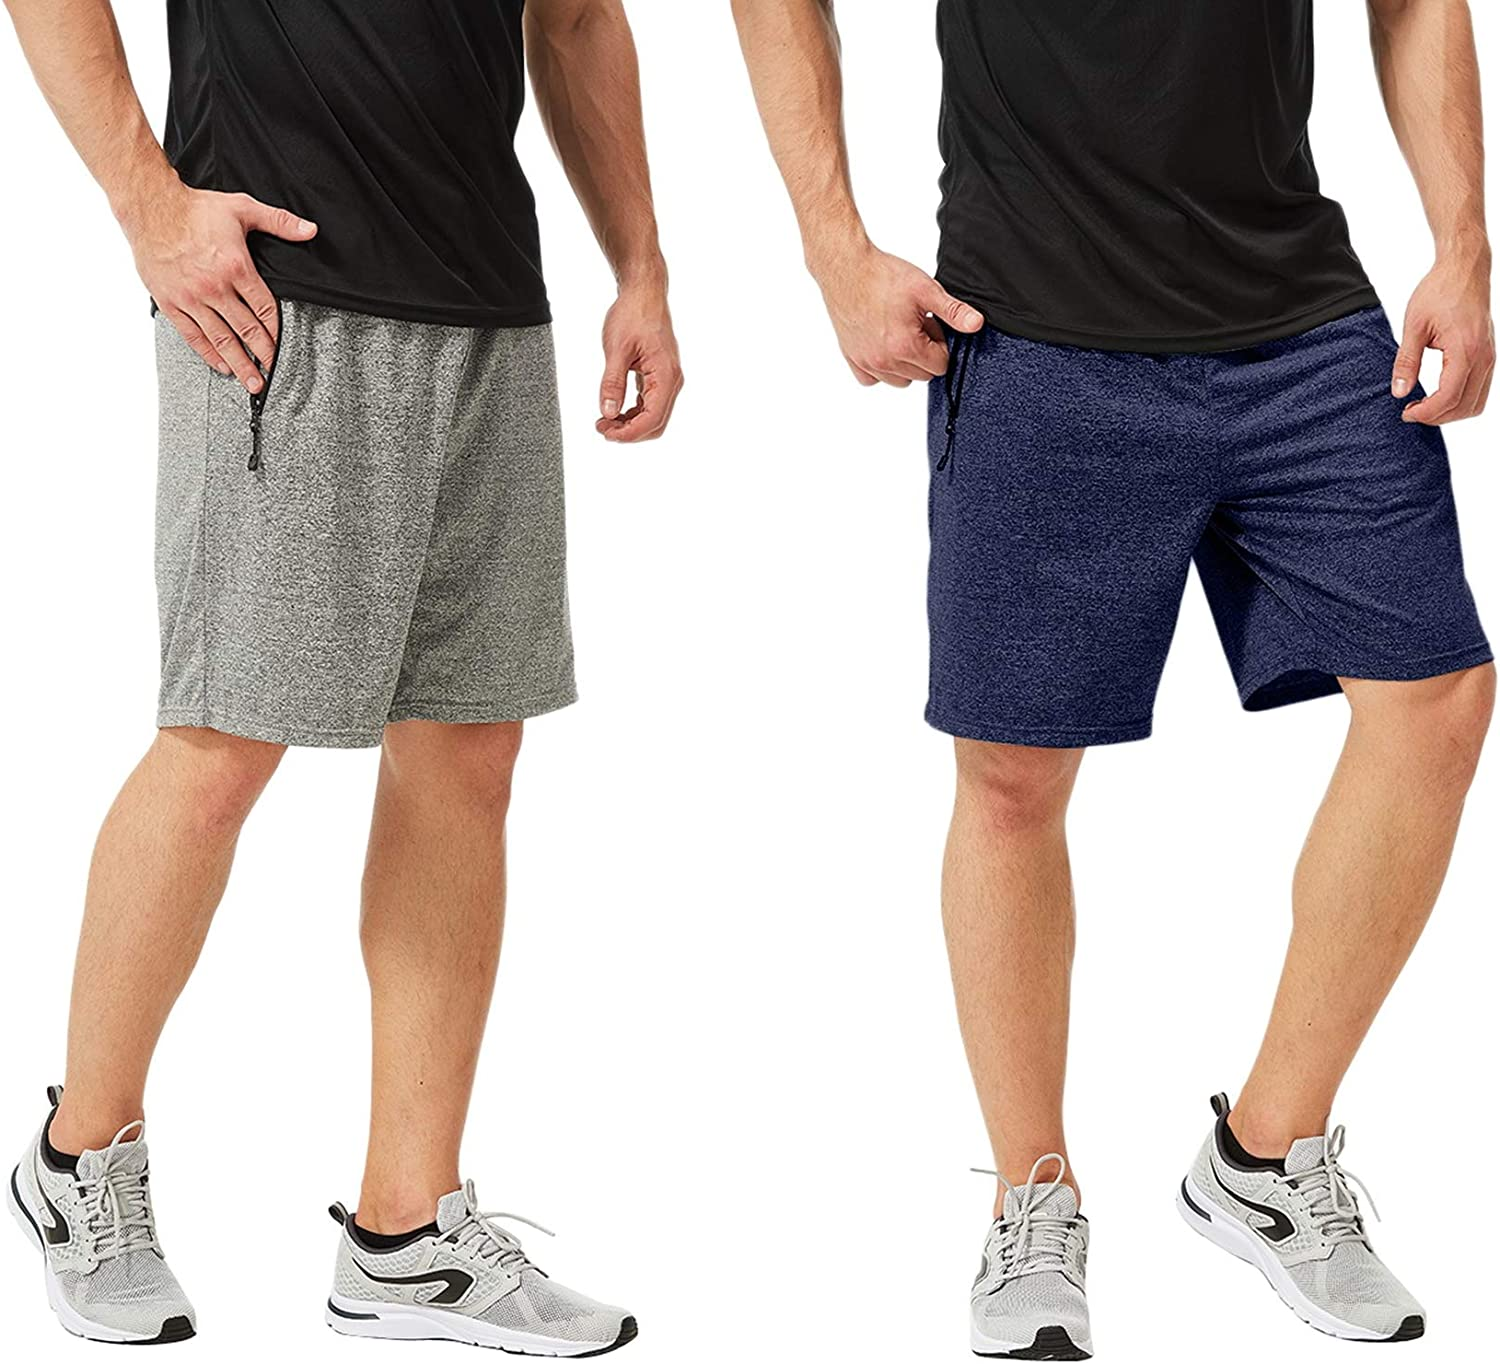 2pcs Set TEXFIT Mens 2-Pack Gym Shorts with Zipper Pockets Athletic Shorts with Quick Dry Stretch Fabric